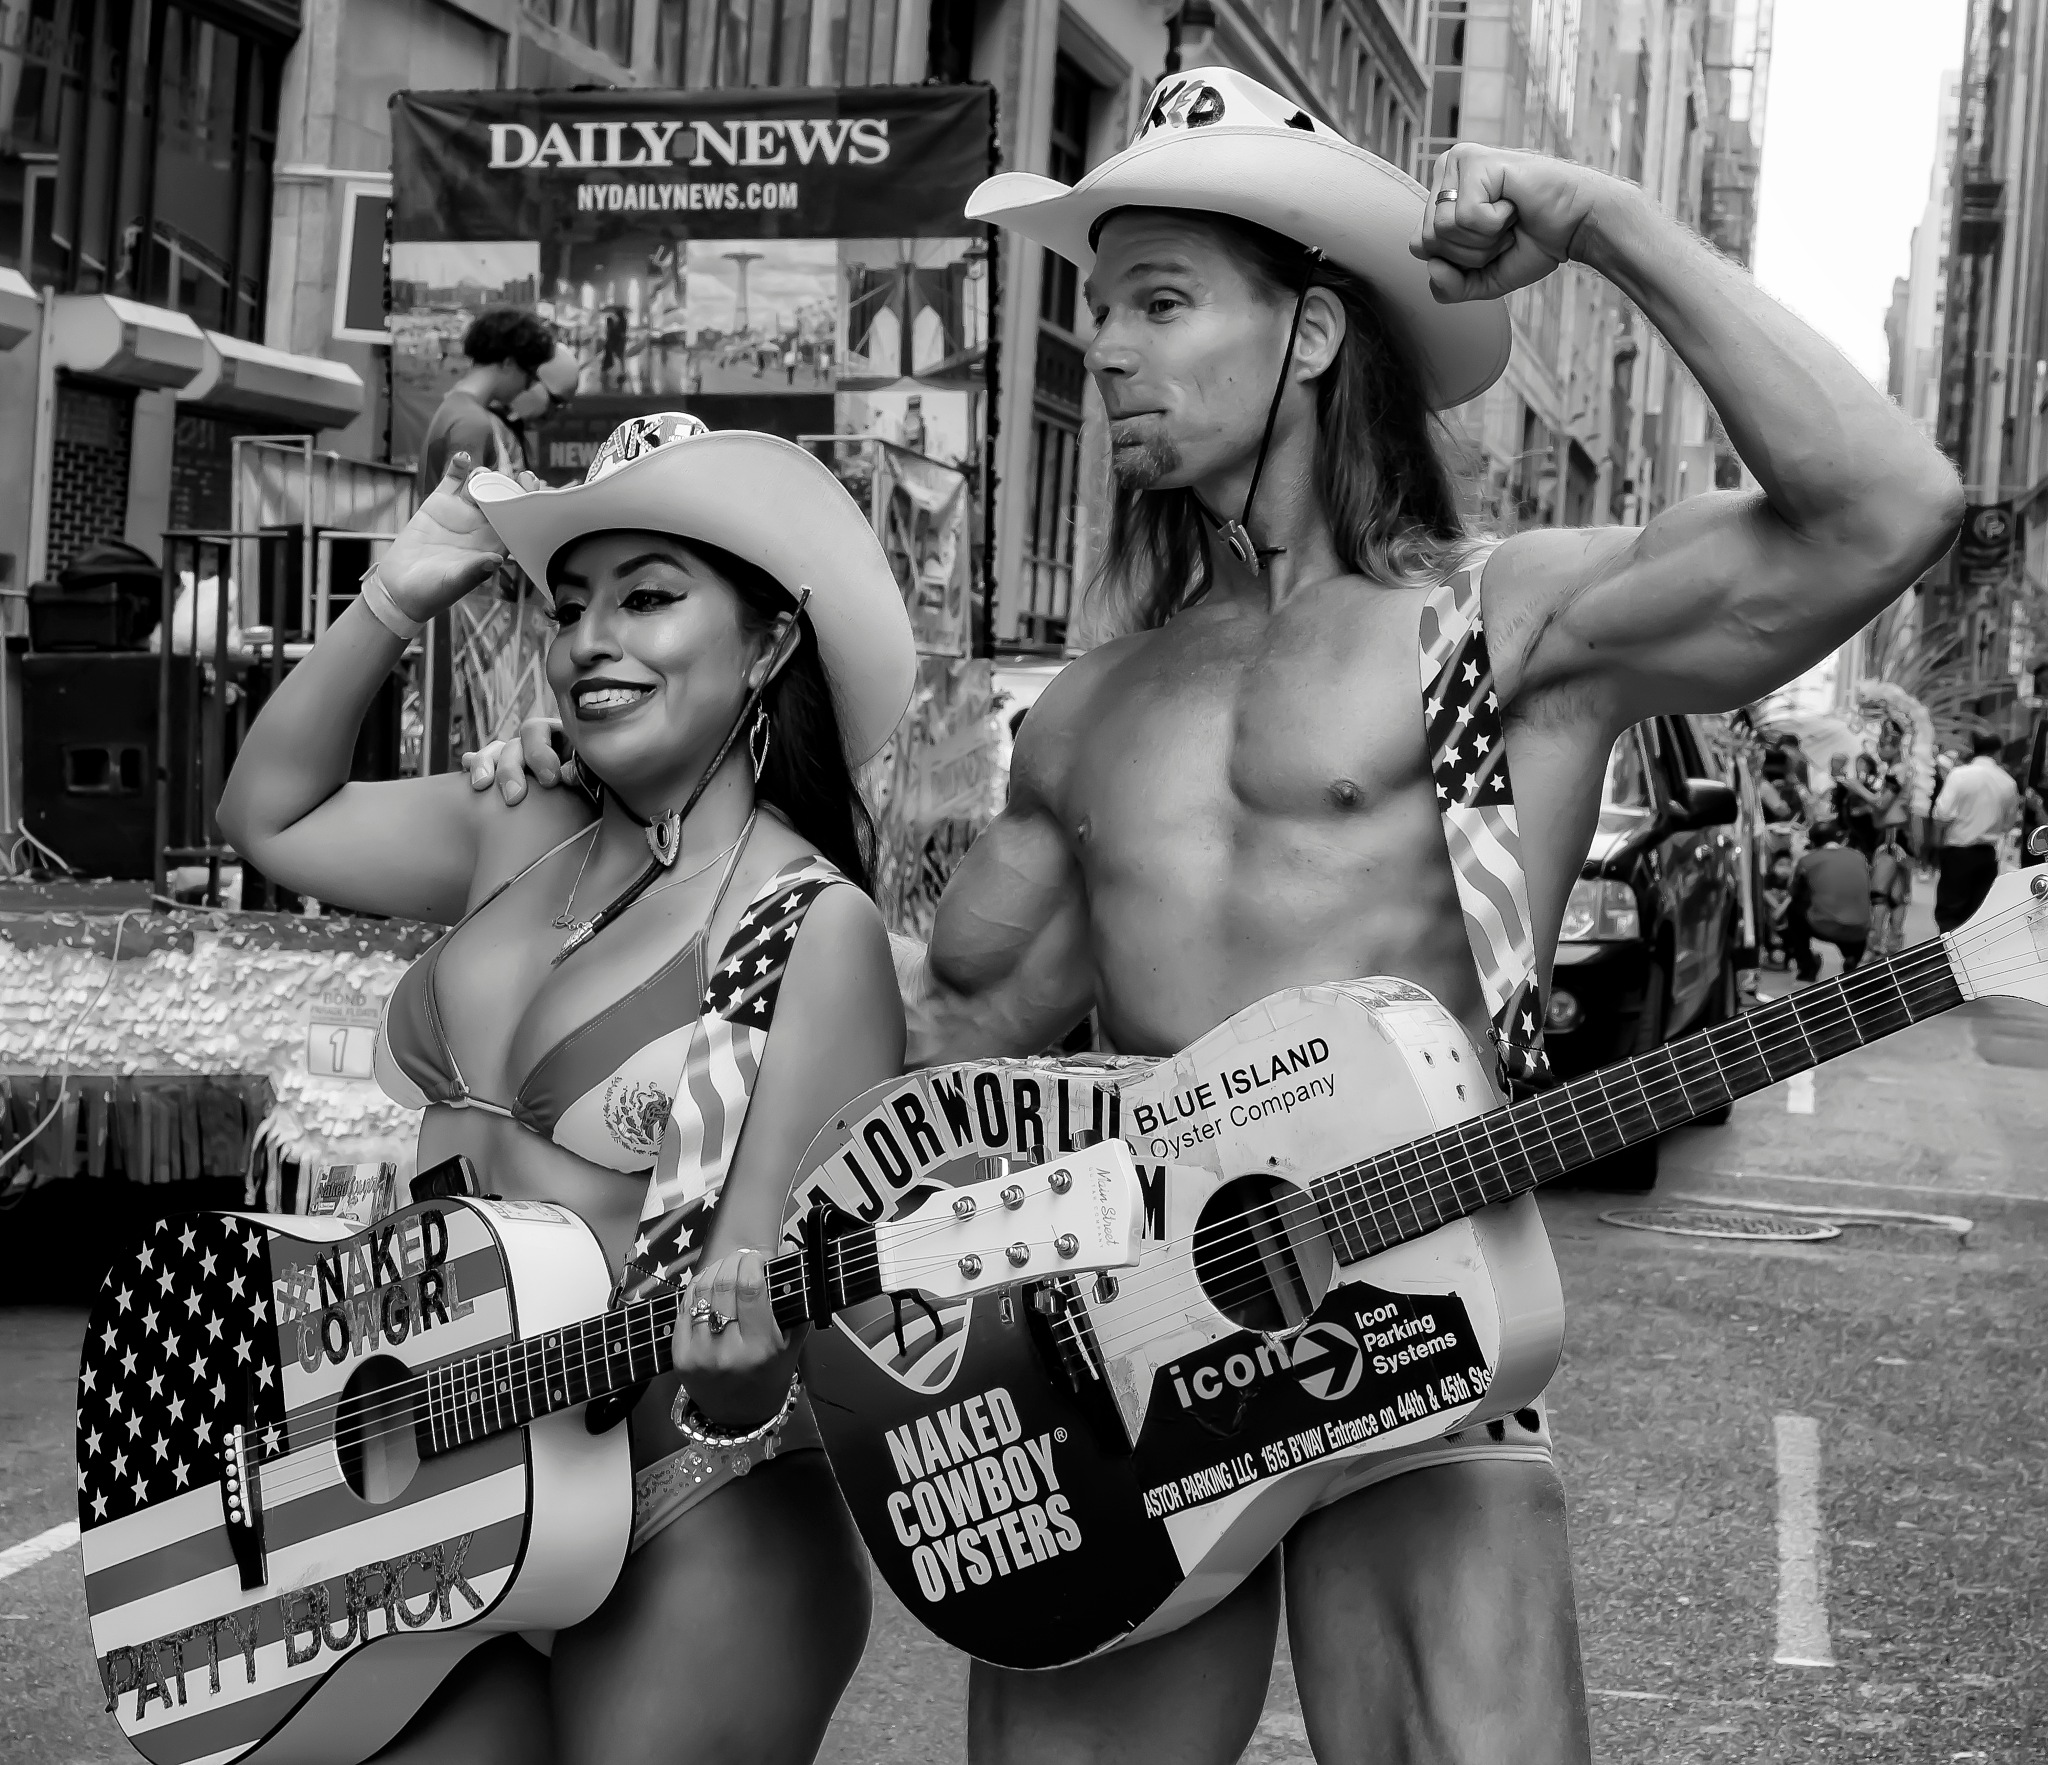 Mr. and Mrs. Naked Cowboy by robertullmann